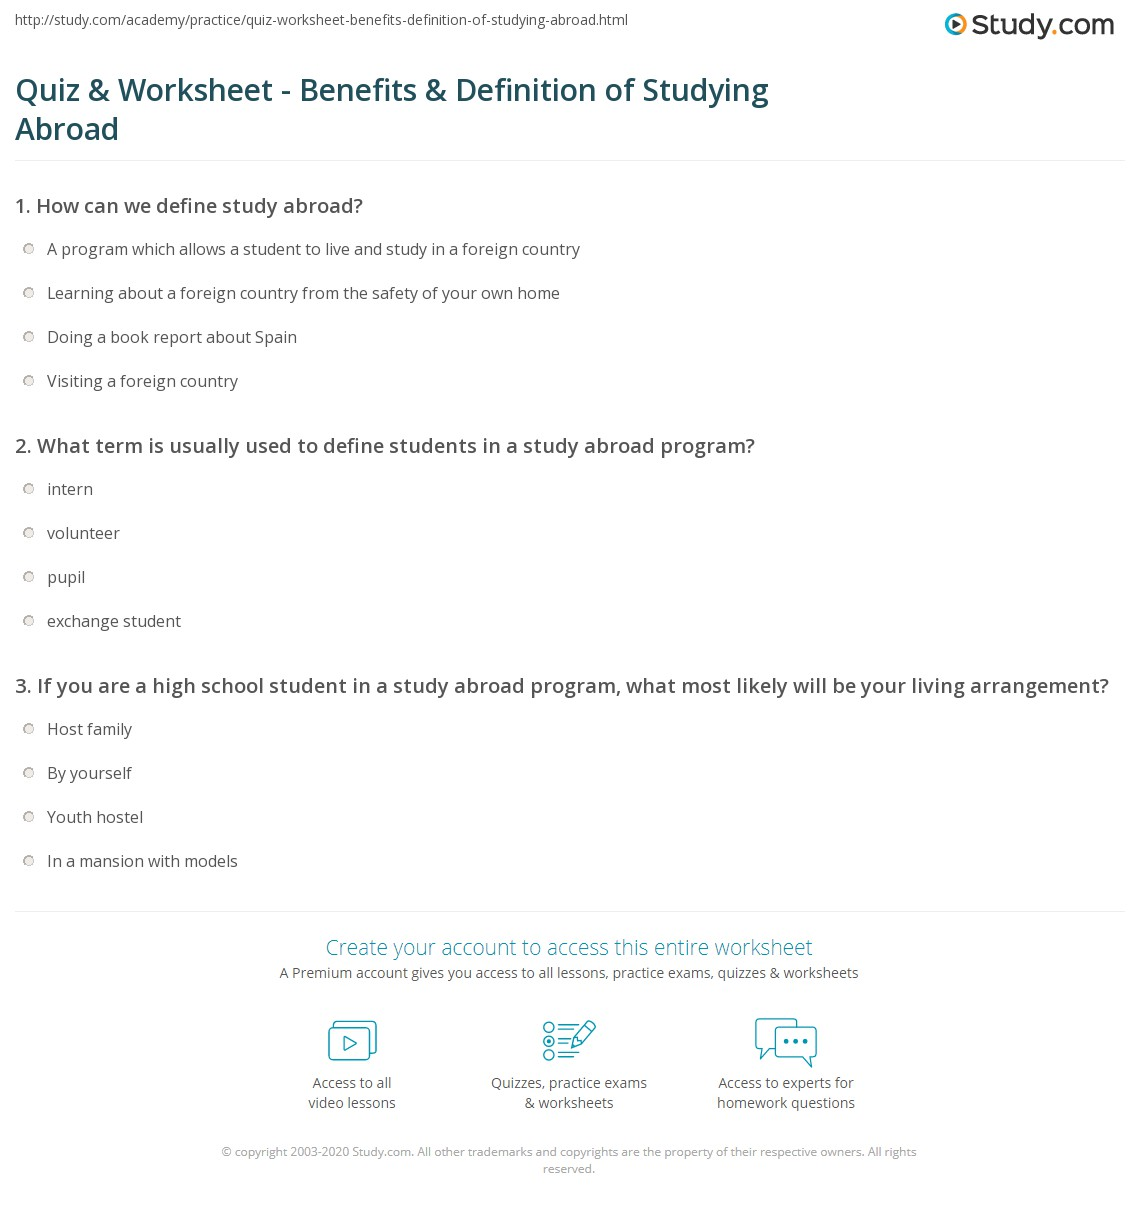 Quiz & Worksheet - Benefits & Definition of Studying Abroad | Study.com